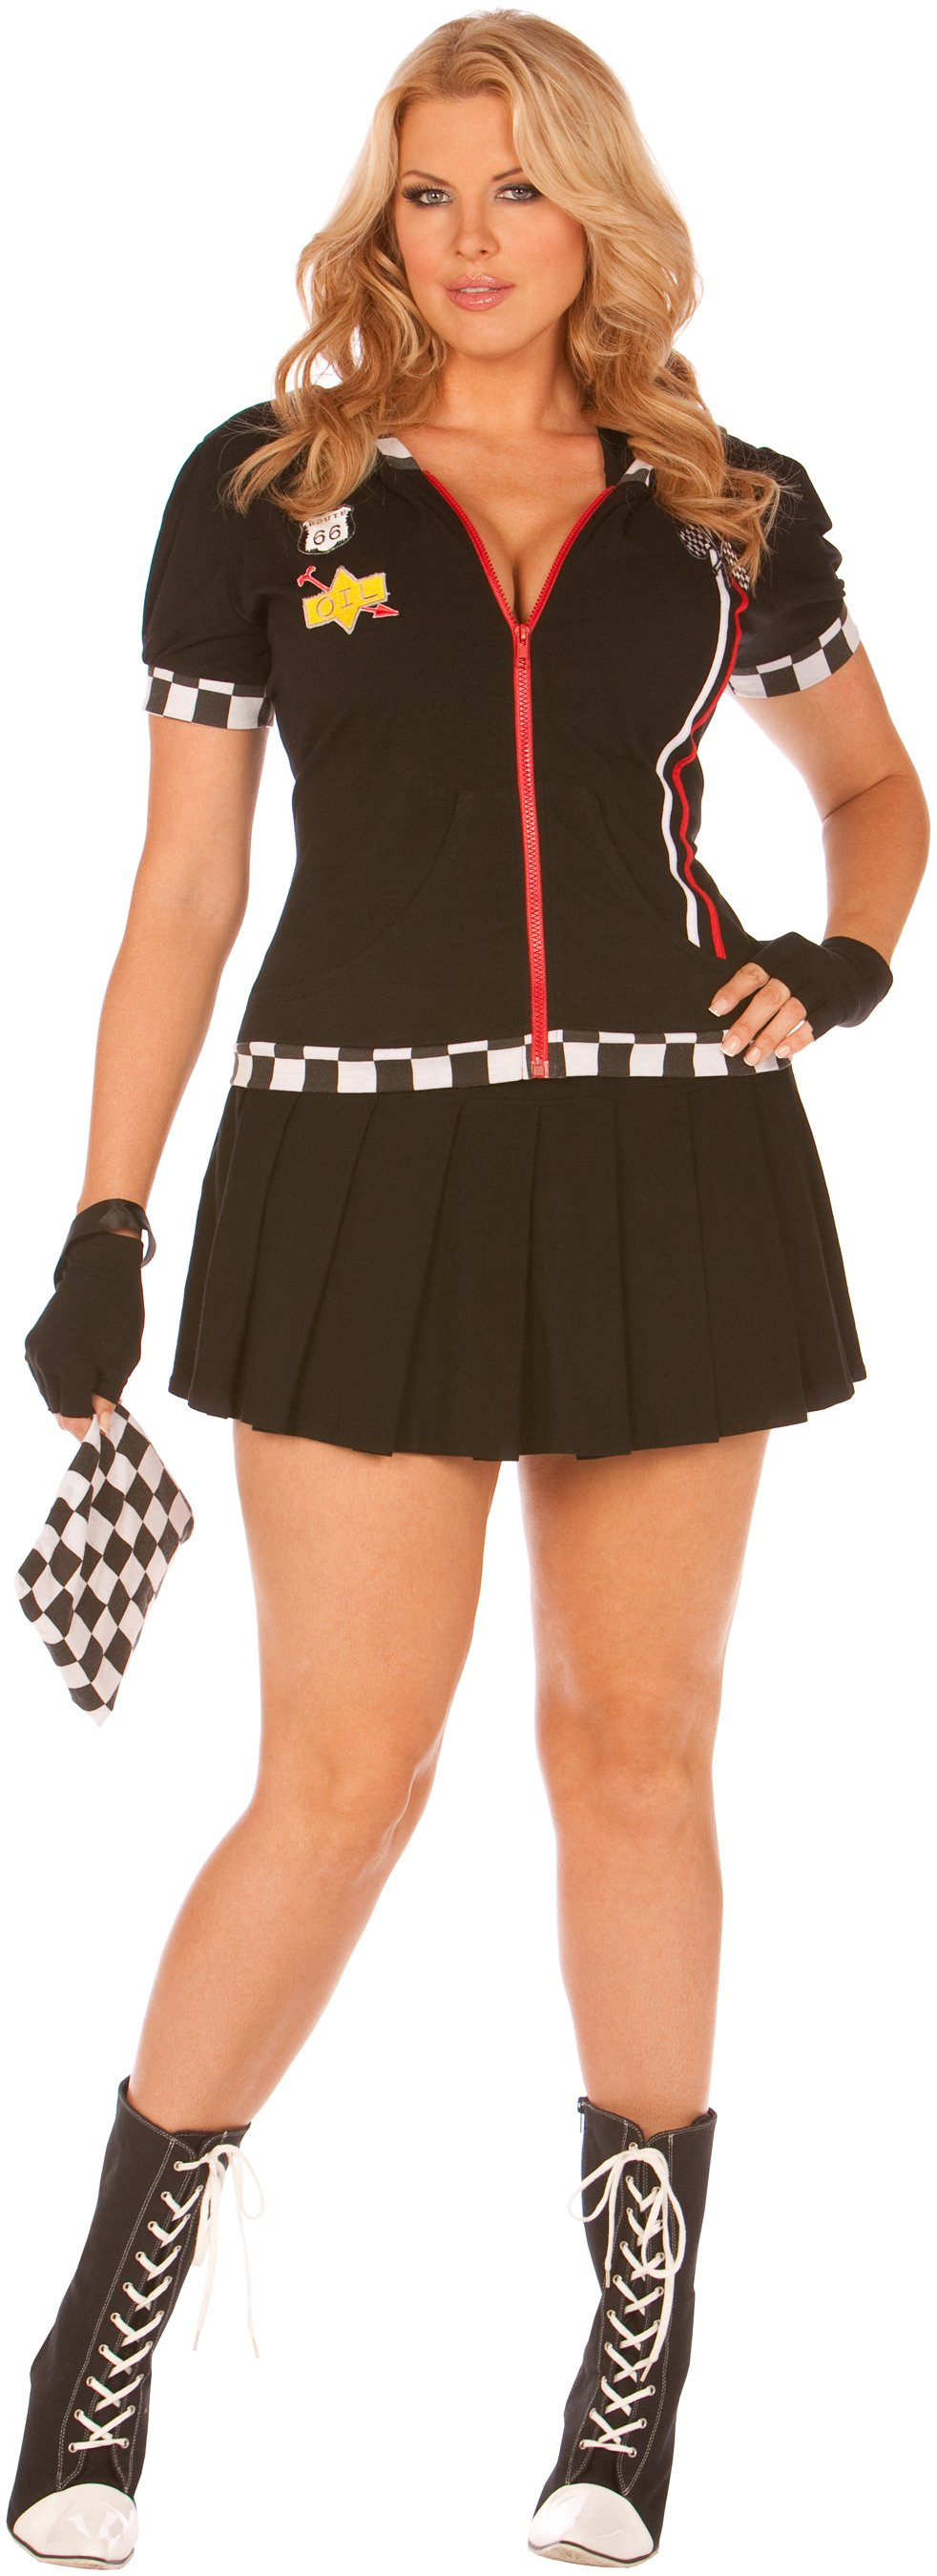 Pit Crew Princess Adult Plus Costume